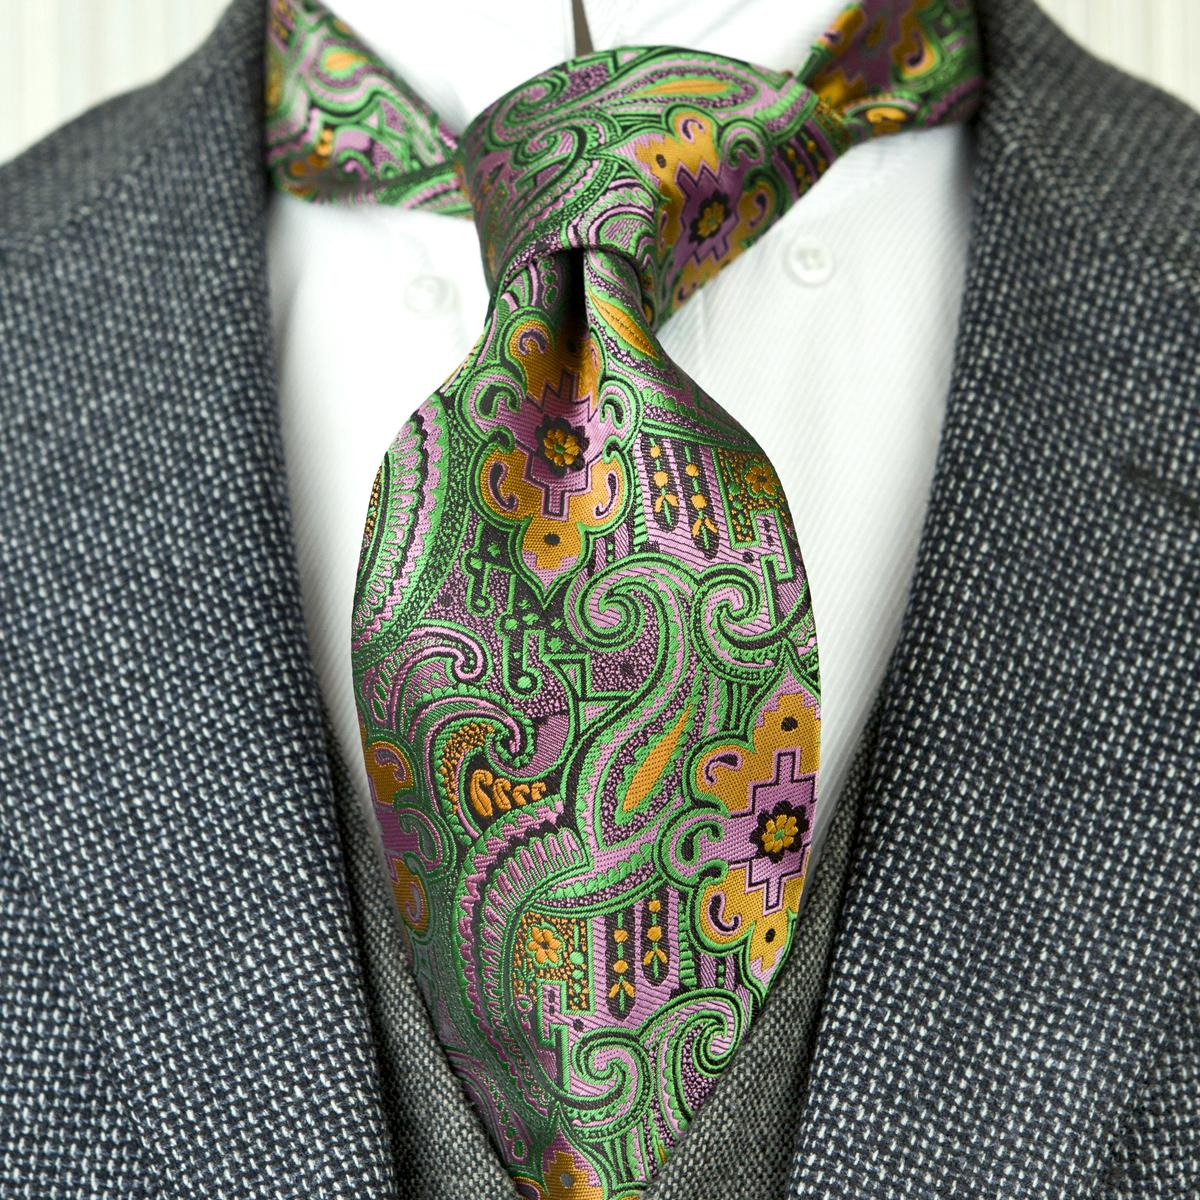 Free Shipping F26 Multicolor Green Orange Pink Pattern Floral Mens Ties Neckties 100% Silk Jacquard Woven Attractive Brand New Handmade